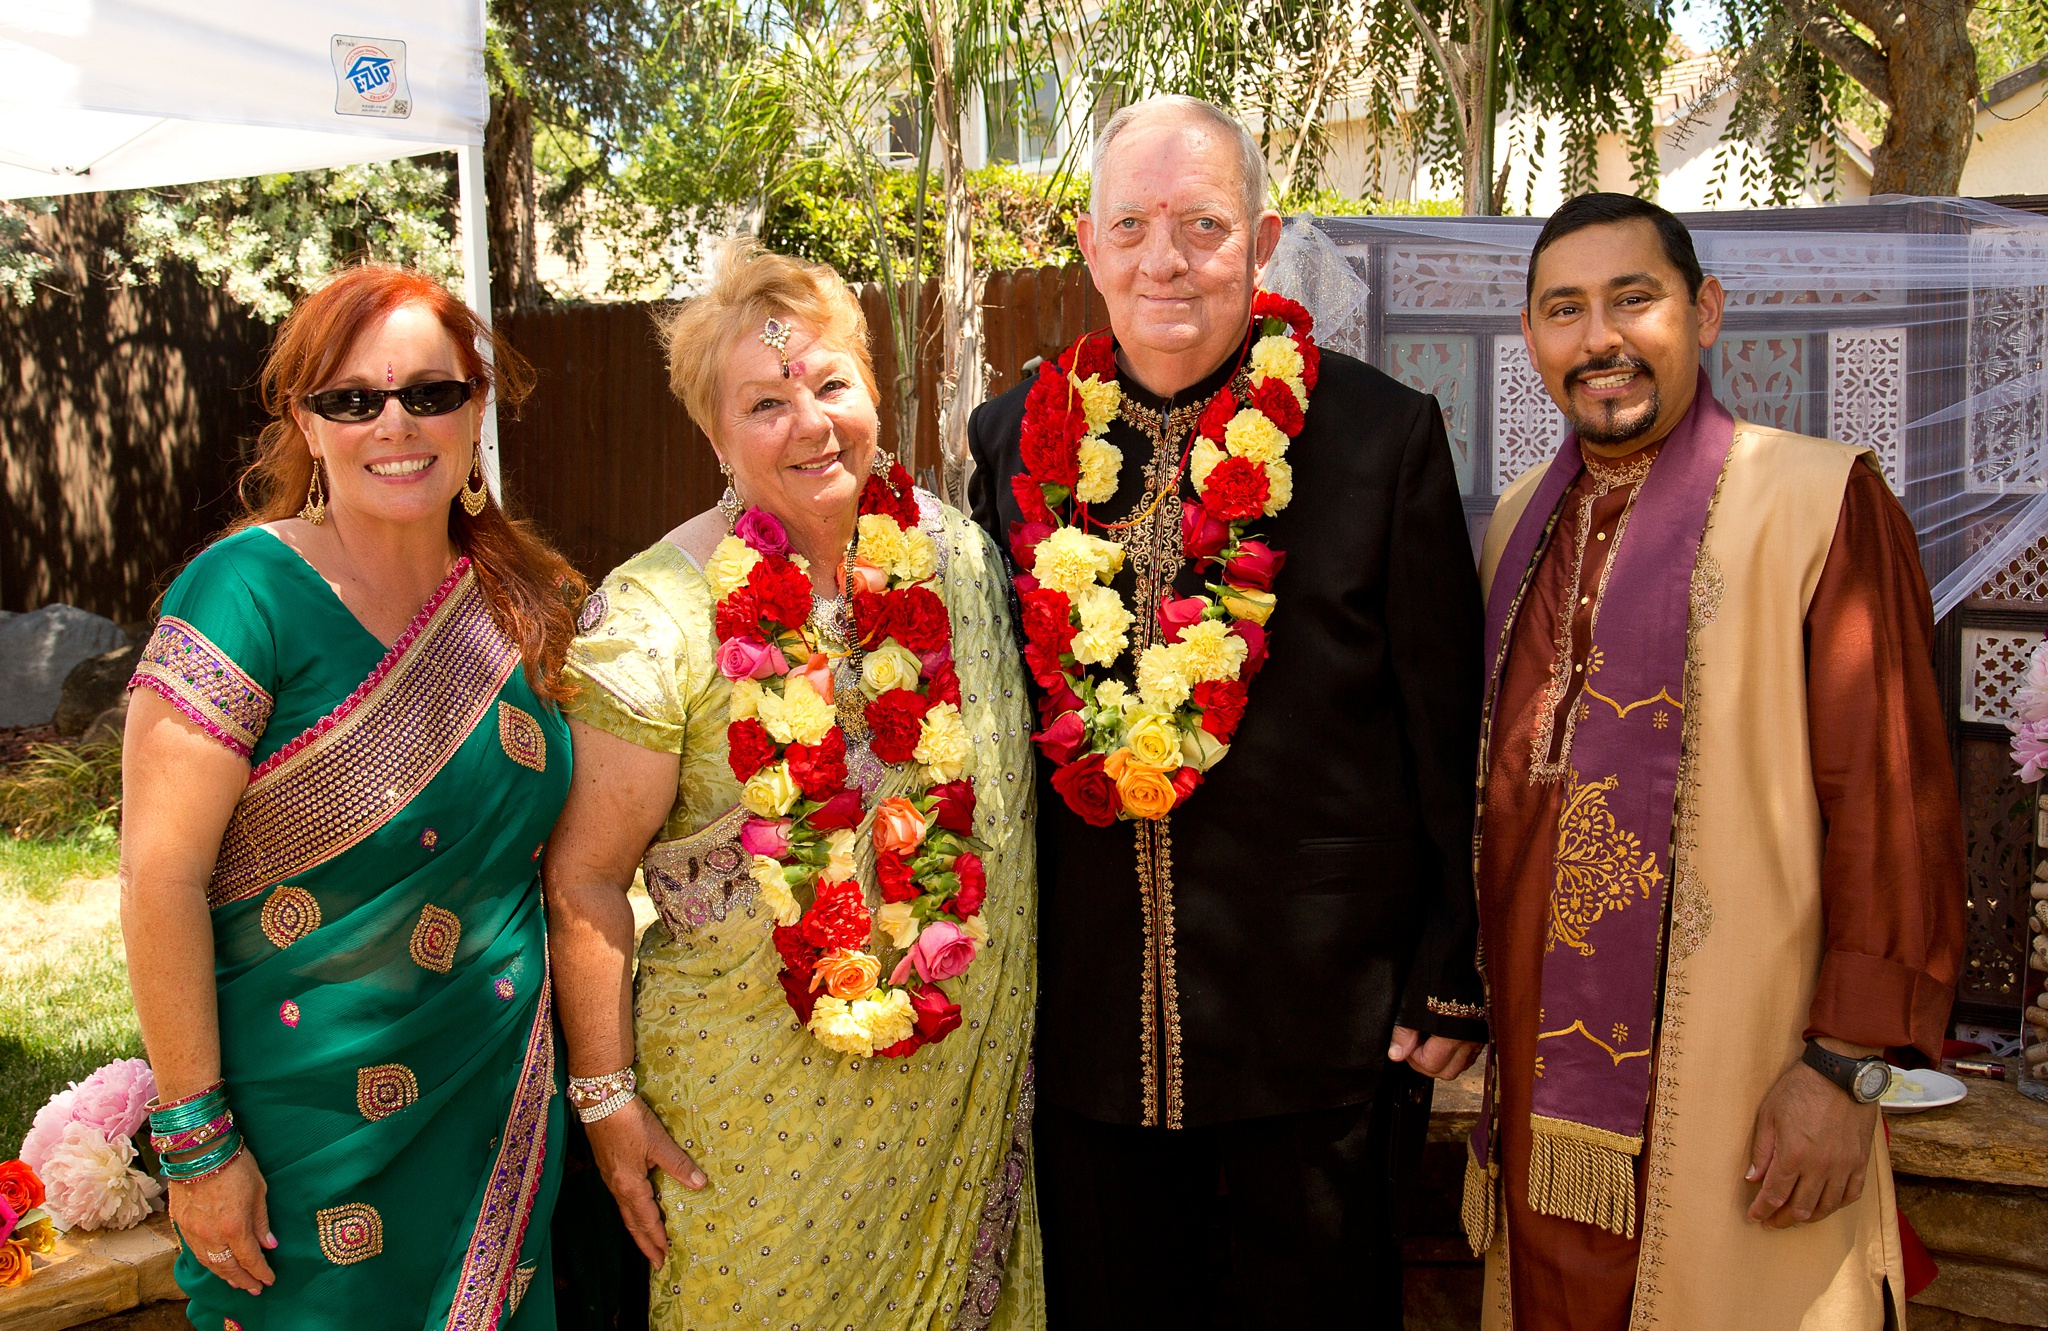 wedding_don_marilyn_hindu_christian_sacramento_wedding_photographer_danielle_alysse_photography_3068_WEB.jpg